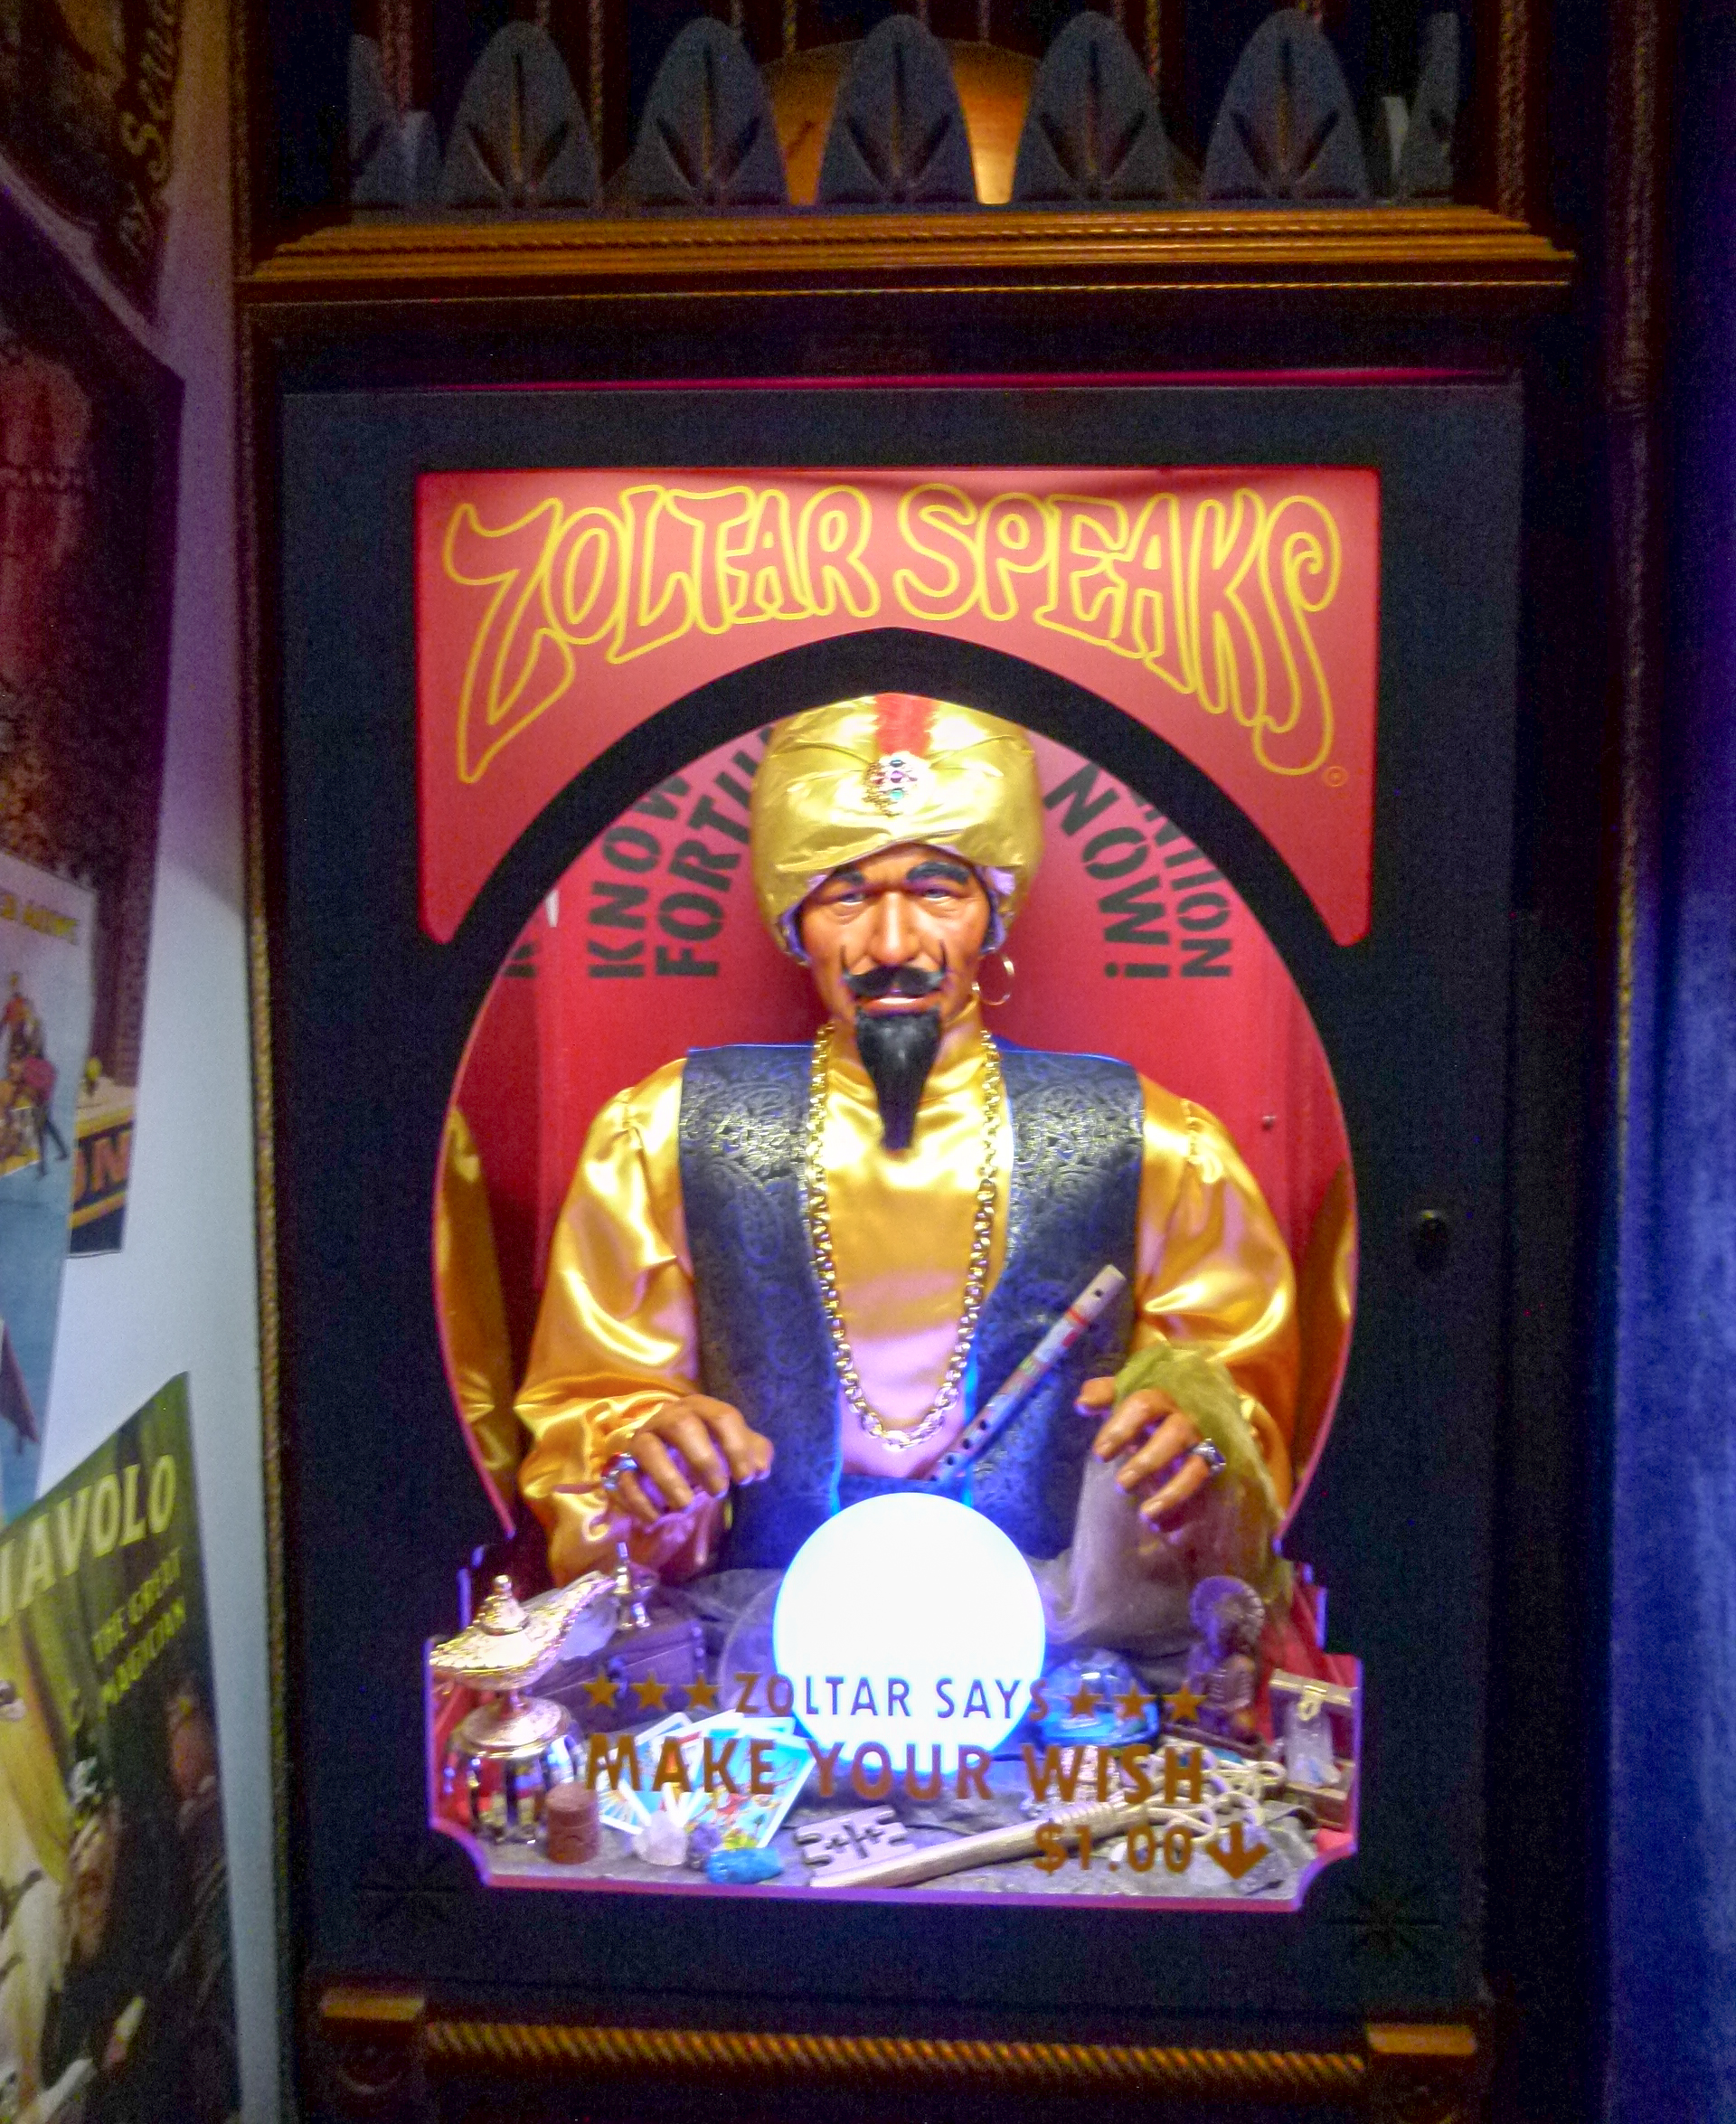 Zoltar knows all!